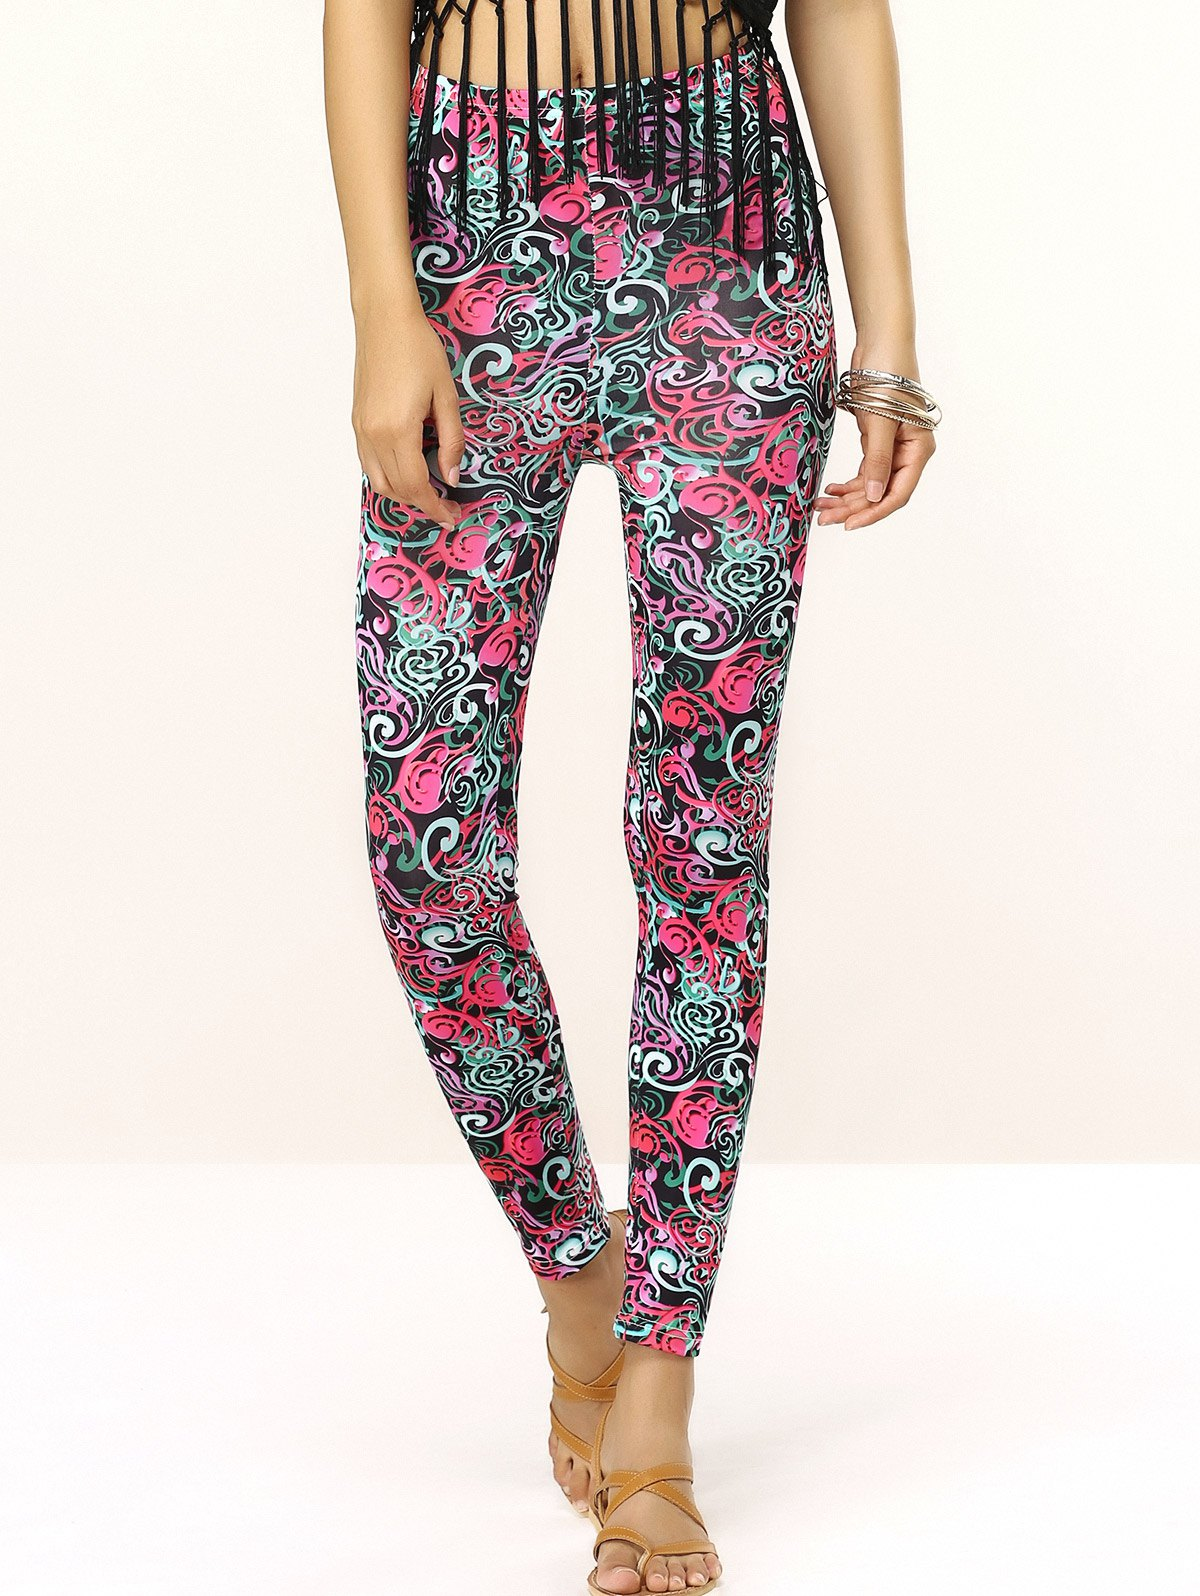 Chic Elastic Waist Ornate Print Skinny Slimming Women's Pants - COLORMIX ONE SIZE